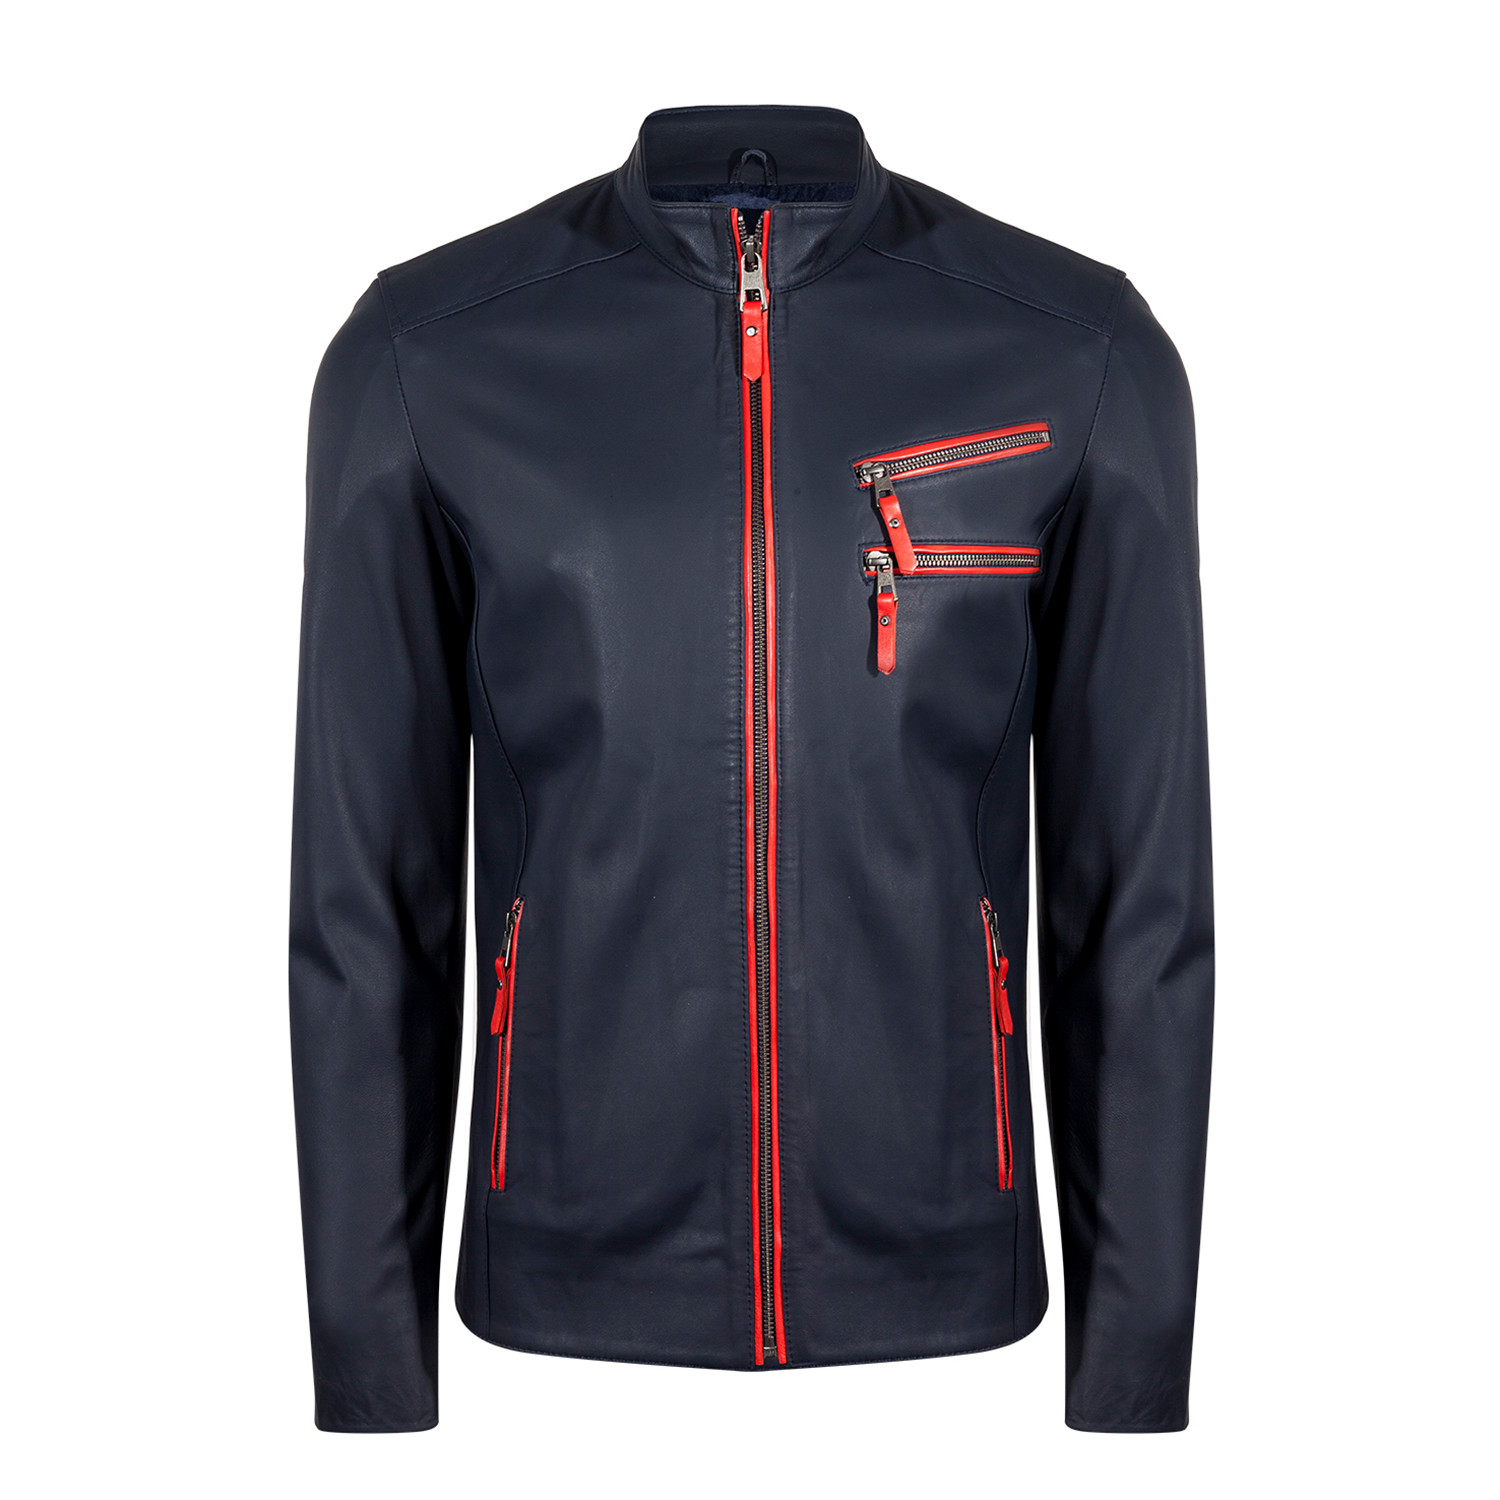 Umut Leather Jacket Navy Blue S Iparelde Touch Of Modern